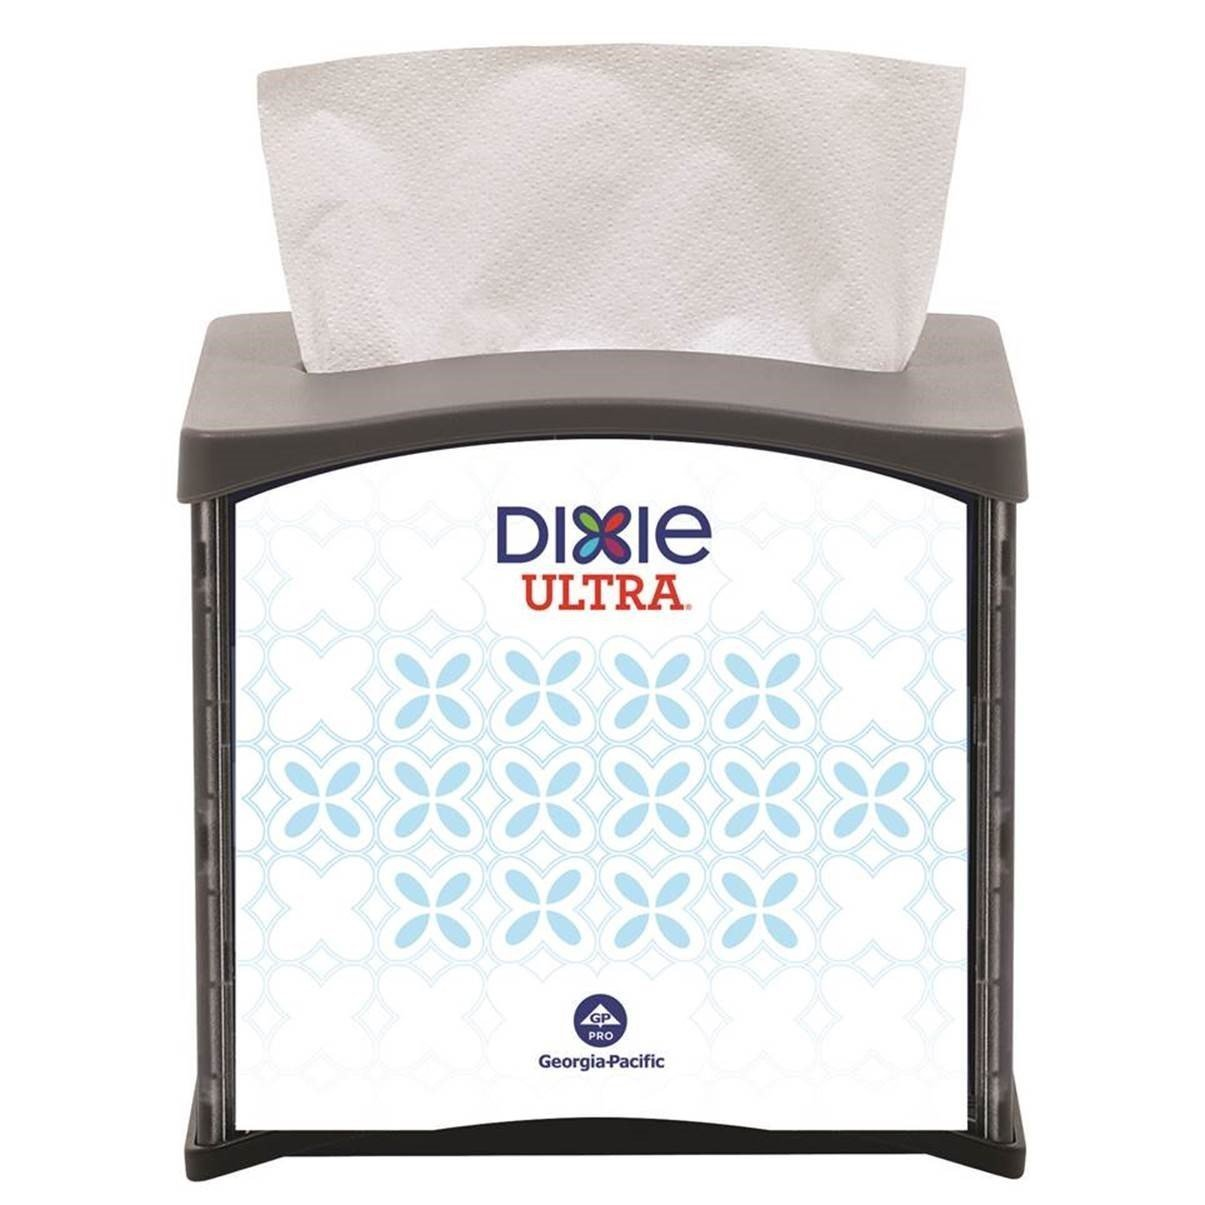 Dixie Ultra Tabletop Interfold Napkin Dispenser (Formerly EasyNap) by GP PRO (Georgia-Pacific), Black, 54527, Holds 300 Napkins,5.900